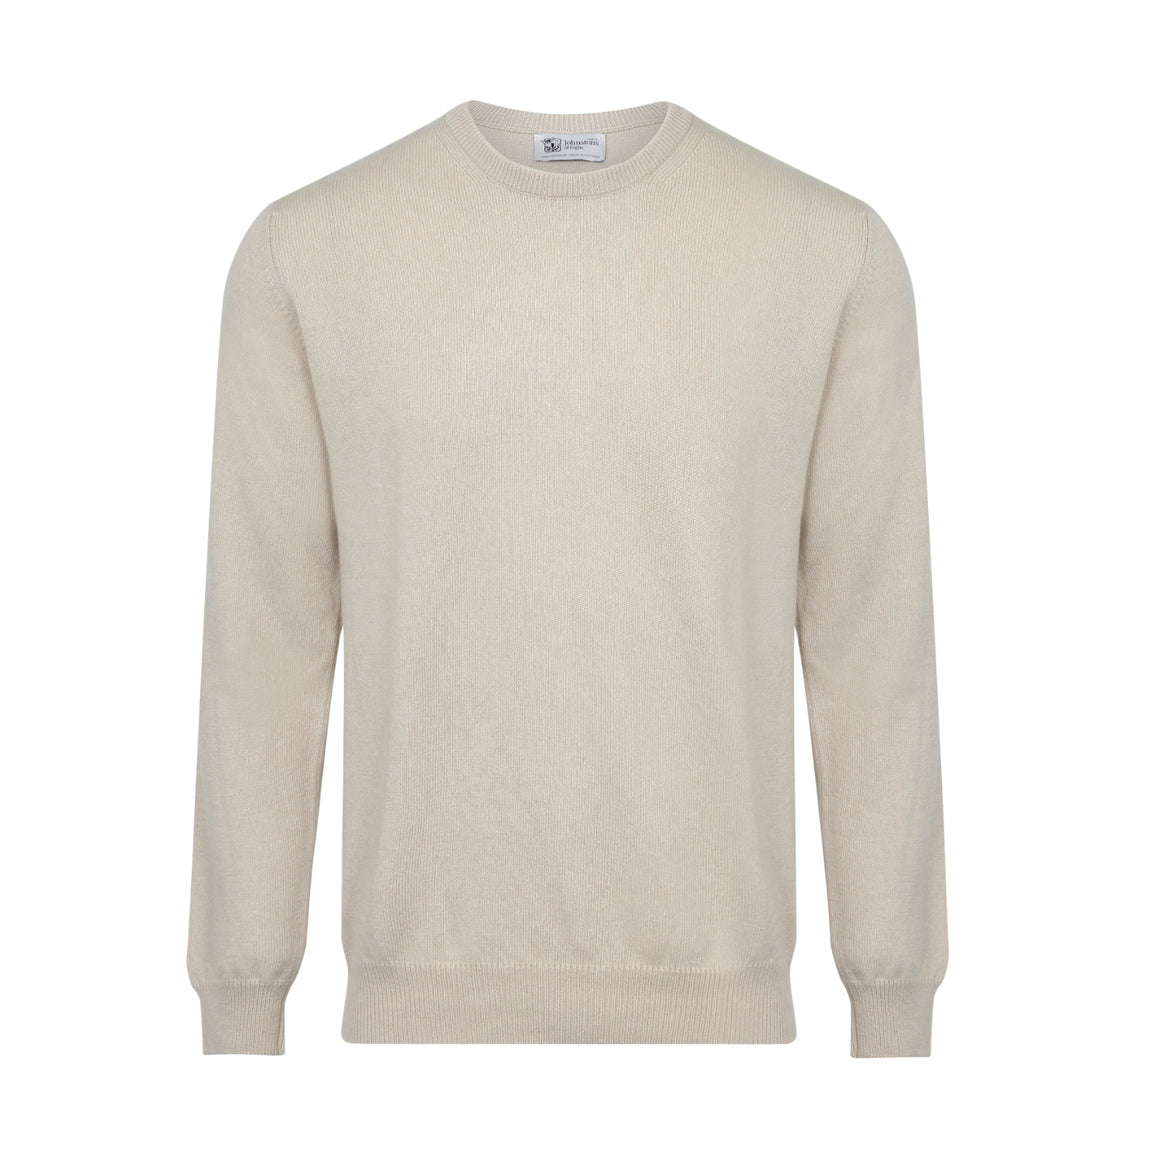 Johnsons Cashmere | Mens Beige Cashmere Sweater | 3 ply Cashmere | shop now at The Cashmere Choice | London